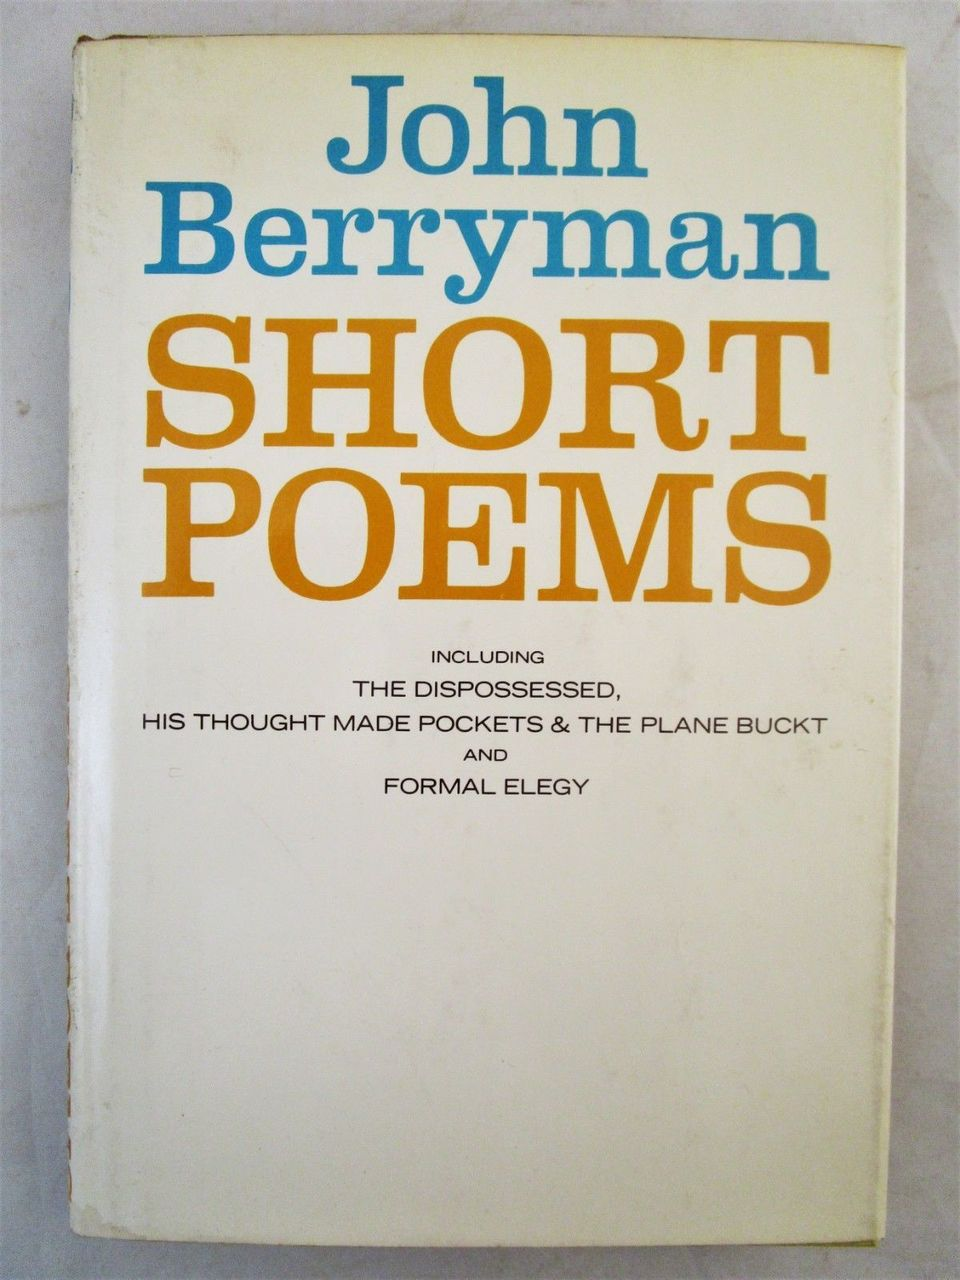 SHORT POEMS, by John Berryman - 1958 [1st Edition] The Dispossessed Scarce DJ